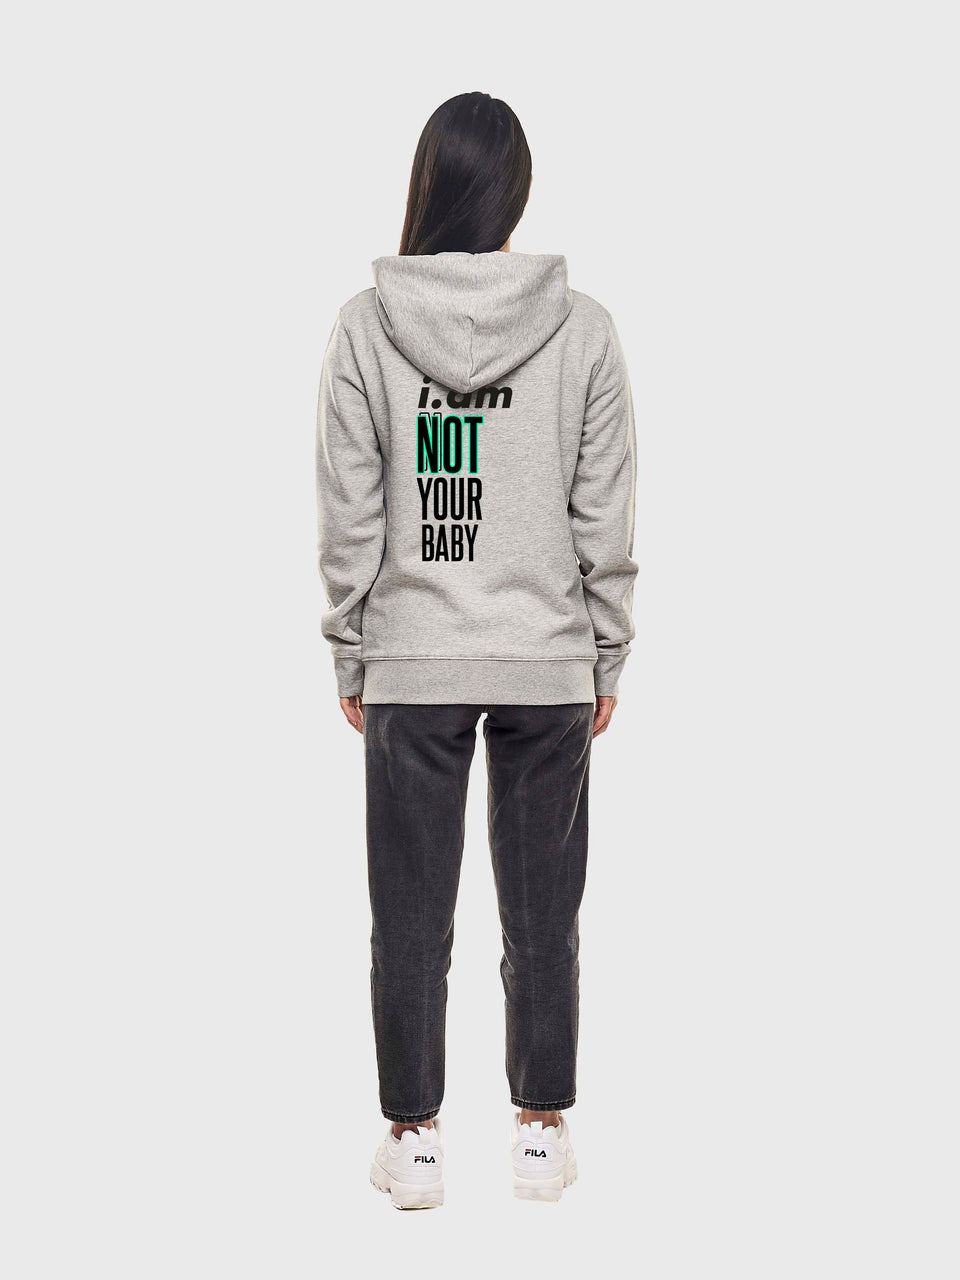 Not your baby - Grey - Unisex zip up hoodie